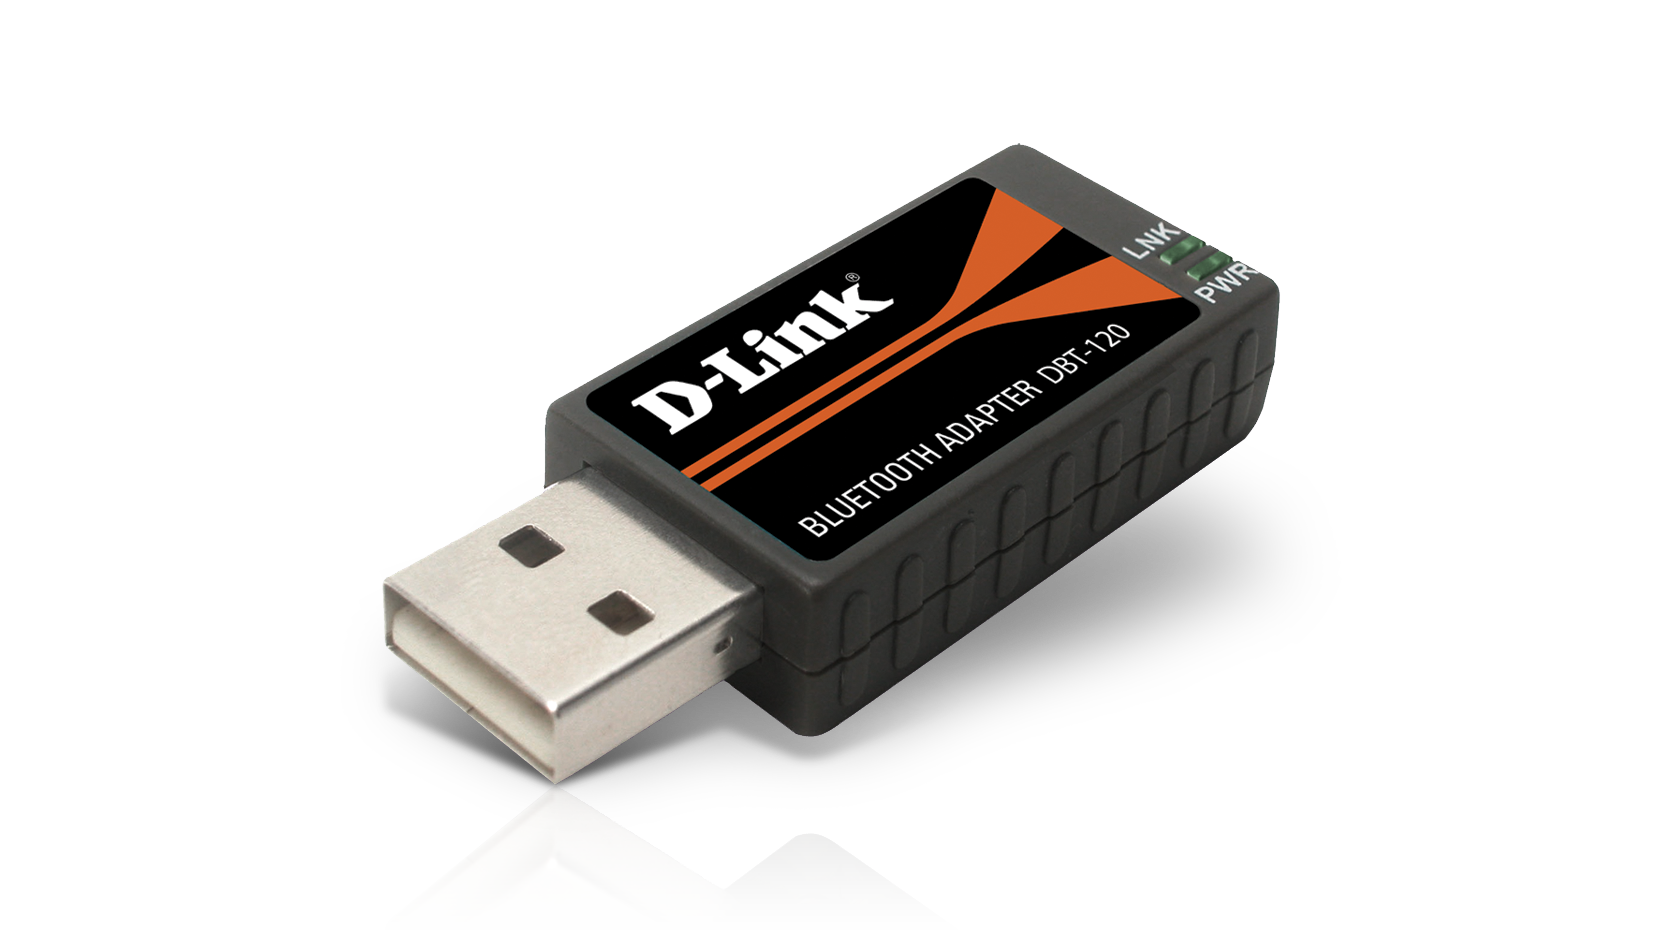 D LINK DBT 120 WINDOWS 8 DRIVERS DOWNLOAD